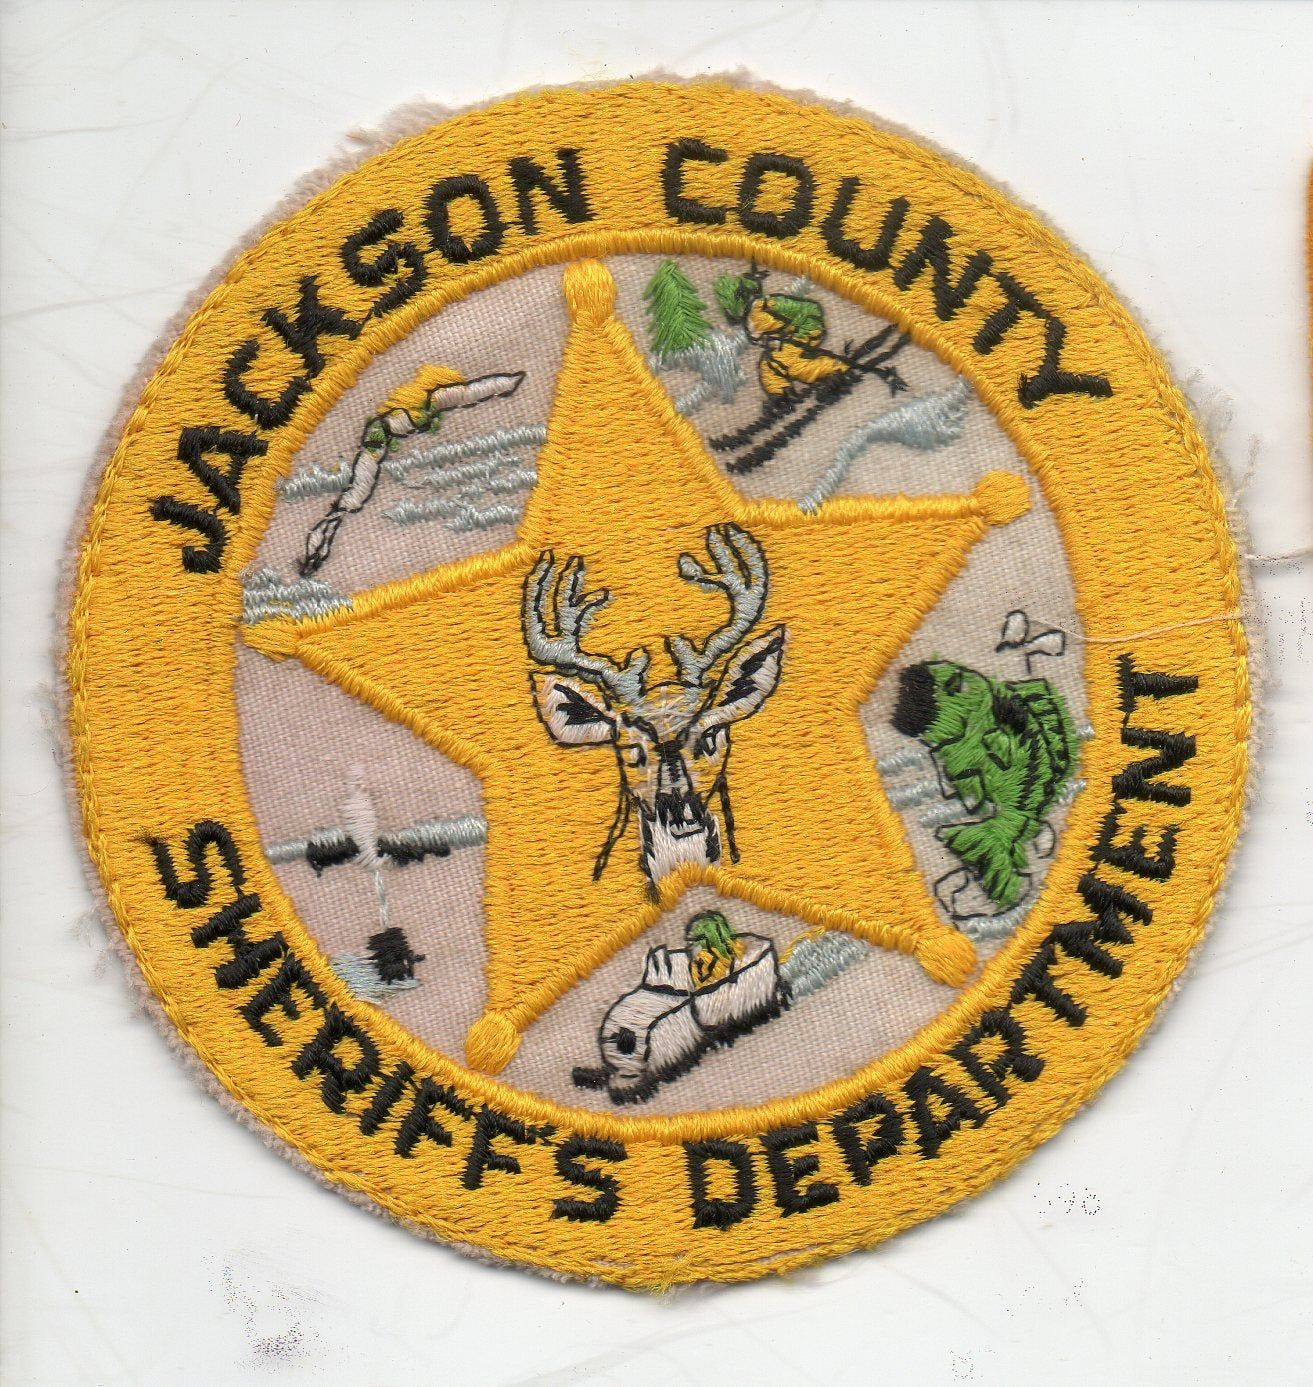 Halloween 2020 Sheriff Department Vintage Jackson County Sheriff's Department Wisconsin | Etsy in